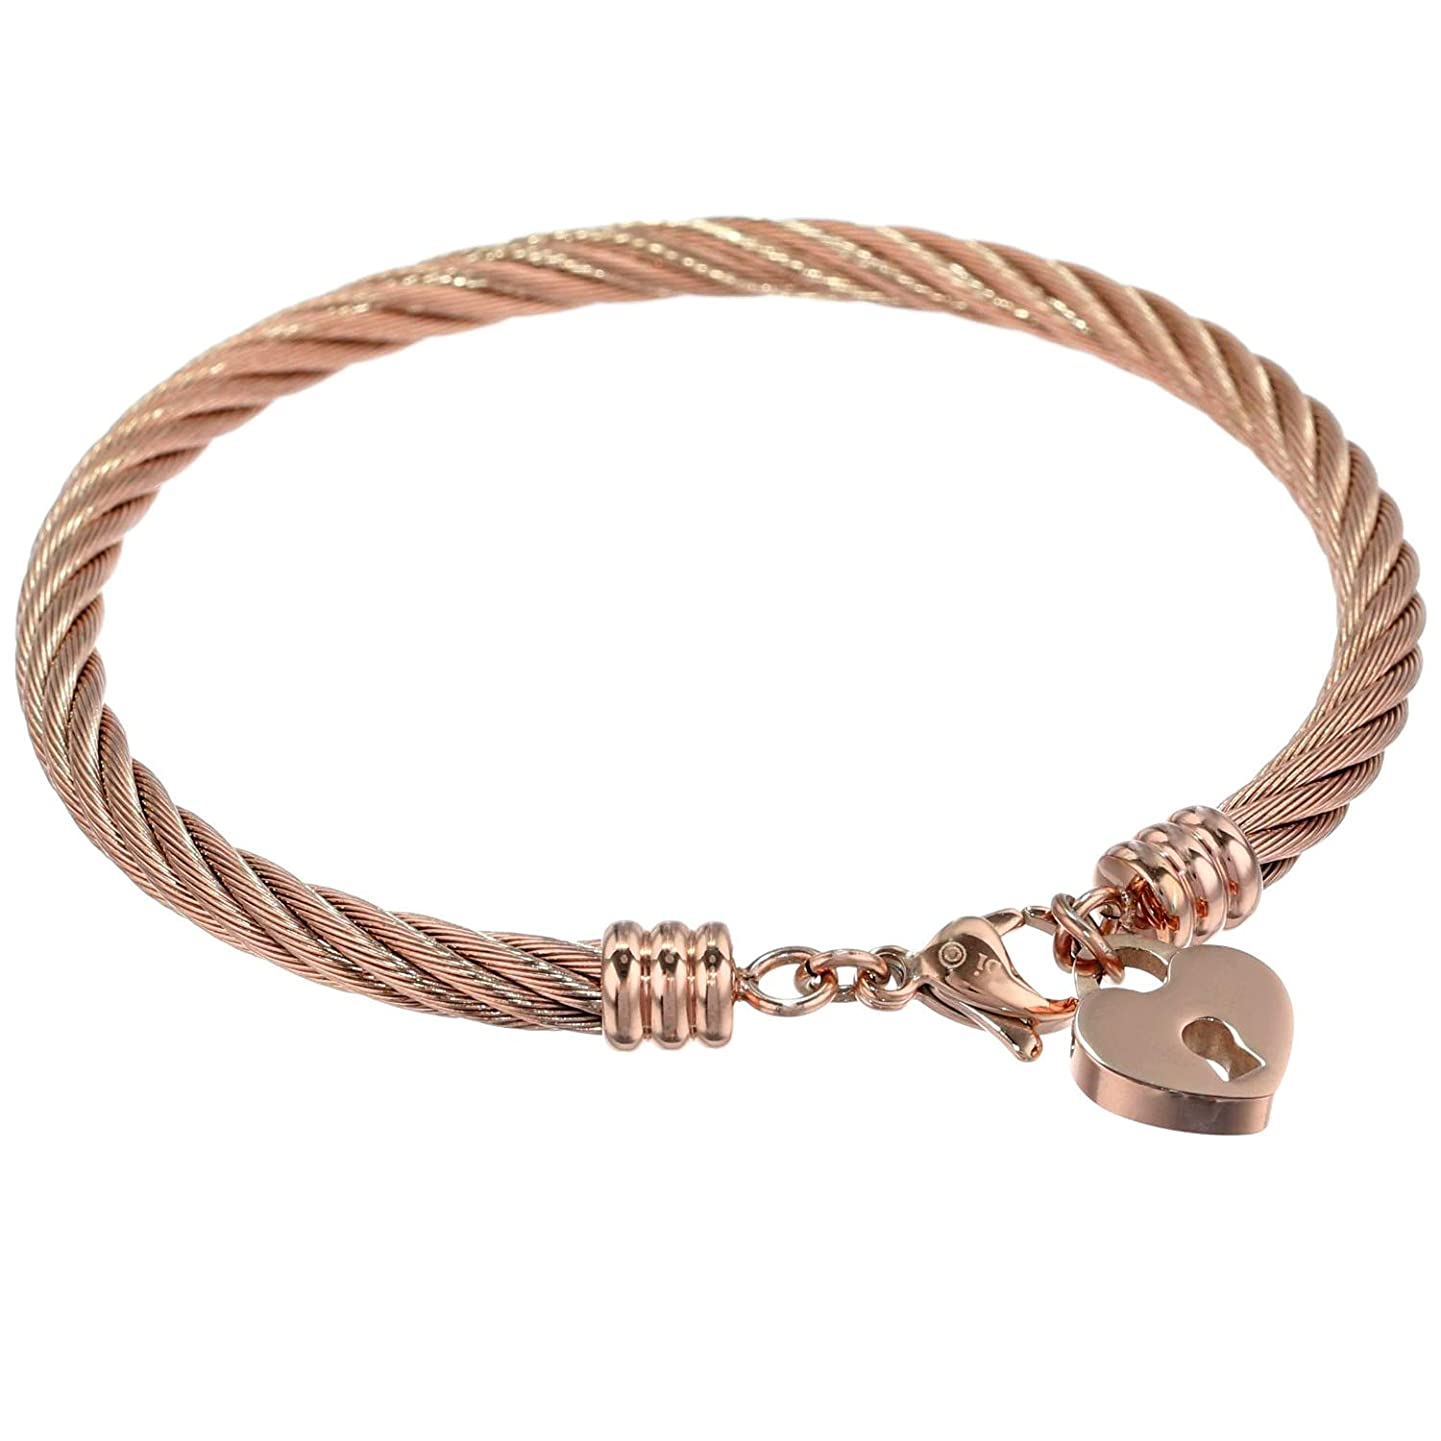 Lavari - Stainless Steel Bangle Bracelet with Heart Lock Charm and Rose Ion Plating